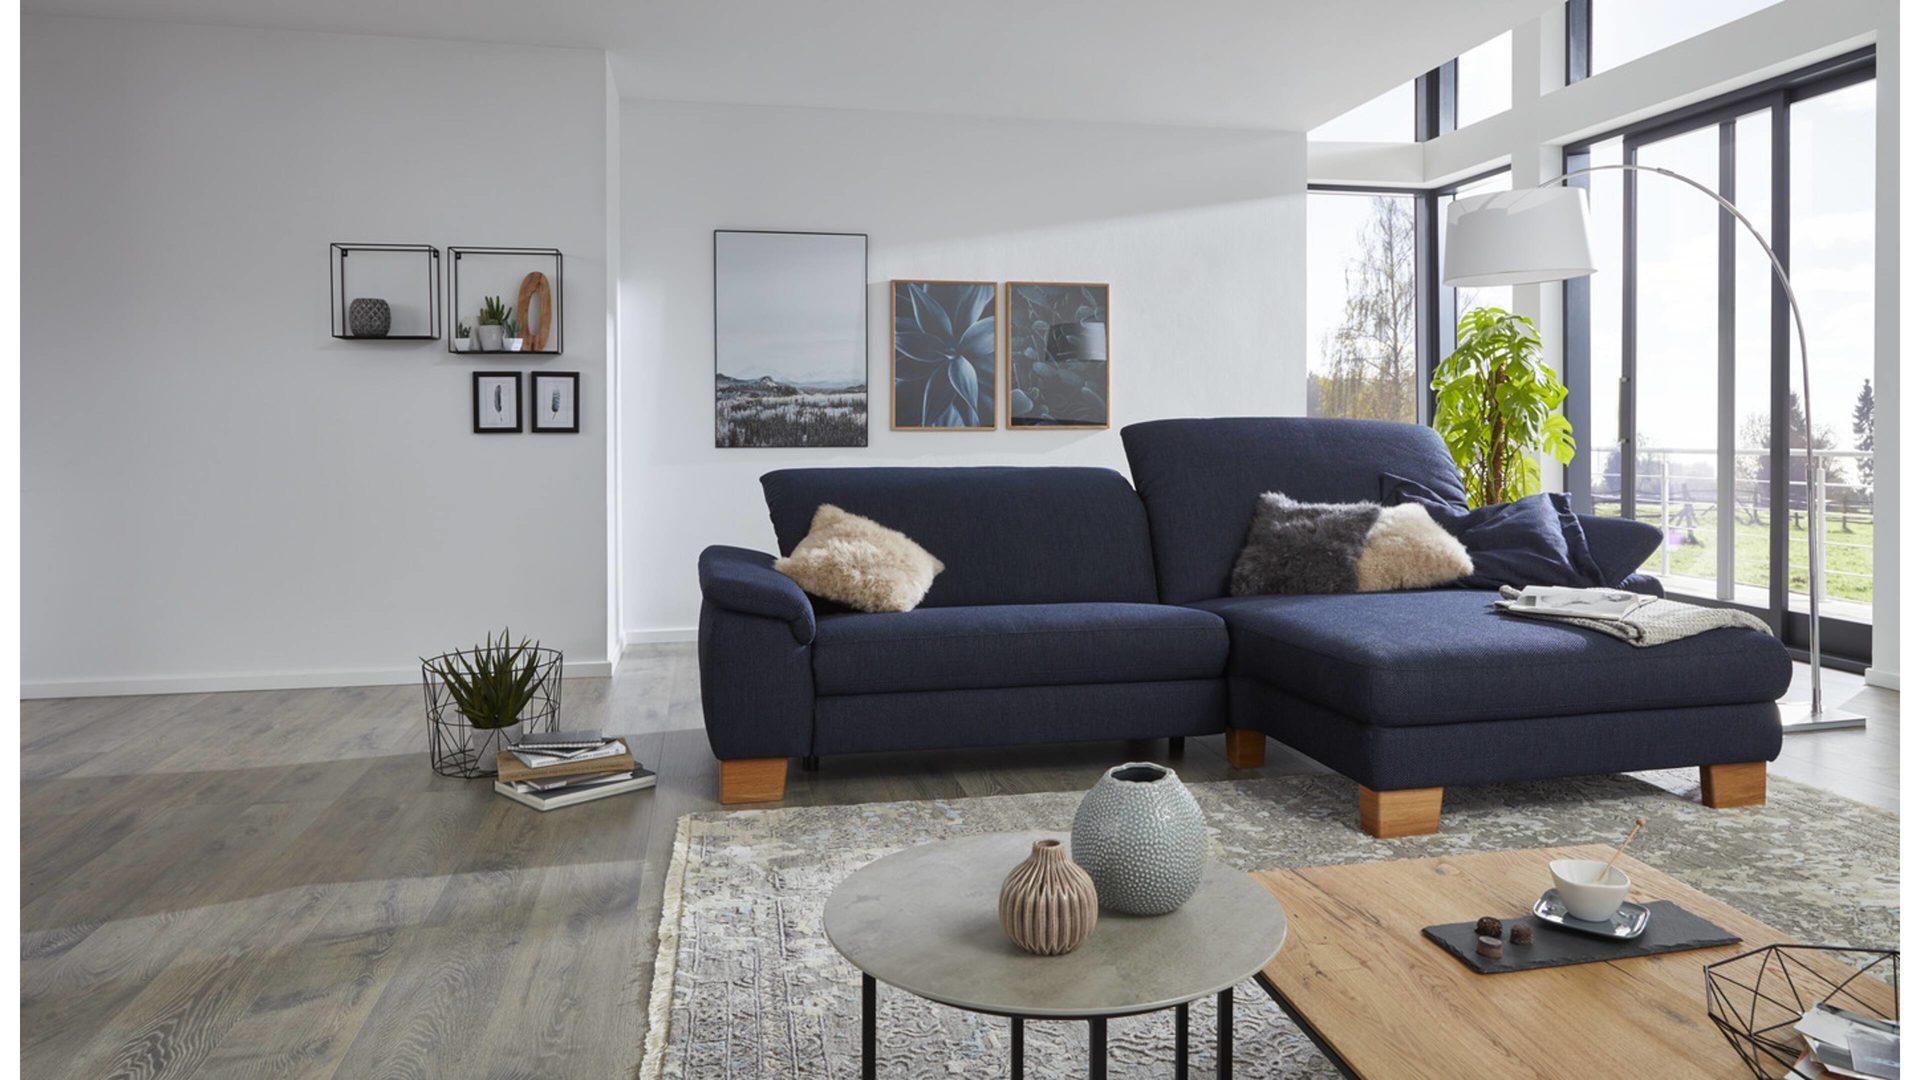 Mobel Janz Gmbh Mobel A Z Couches Sofas Ecksofas Interliving